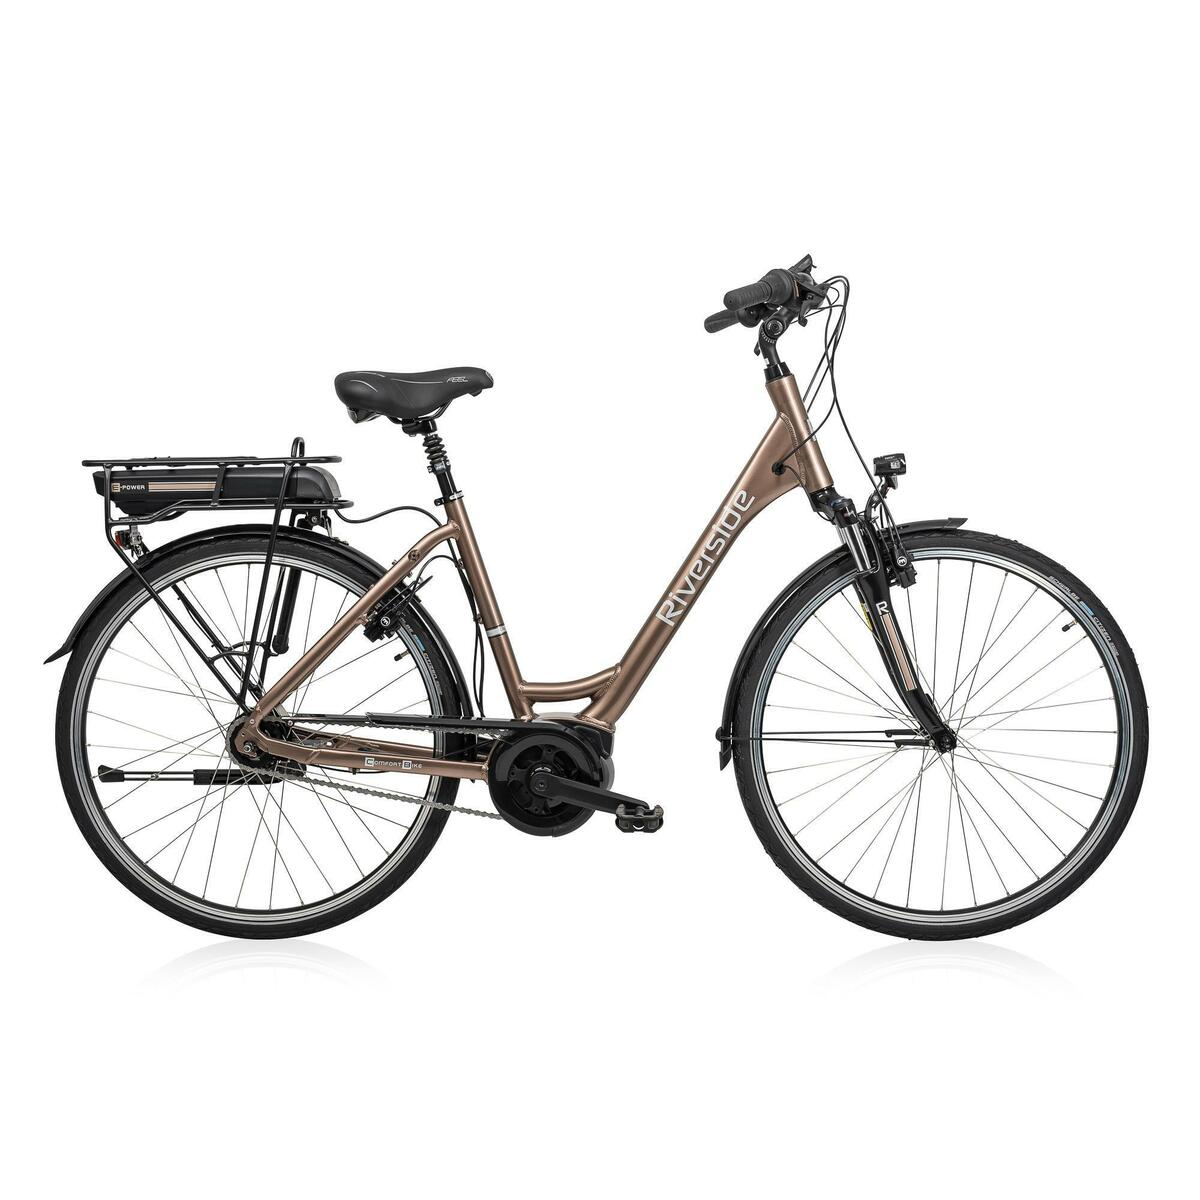 Bild 1 von E-Bike 28 Riverside City Nexus 8 Active Plus 400 Wh Rücktritt braunmetallic